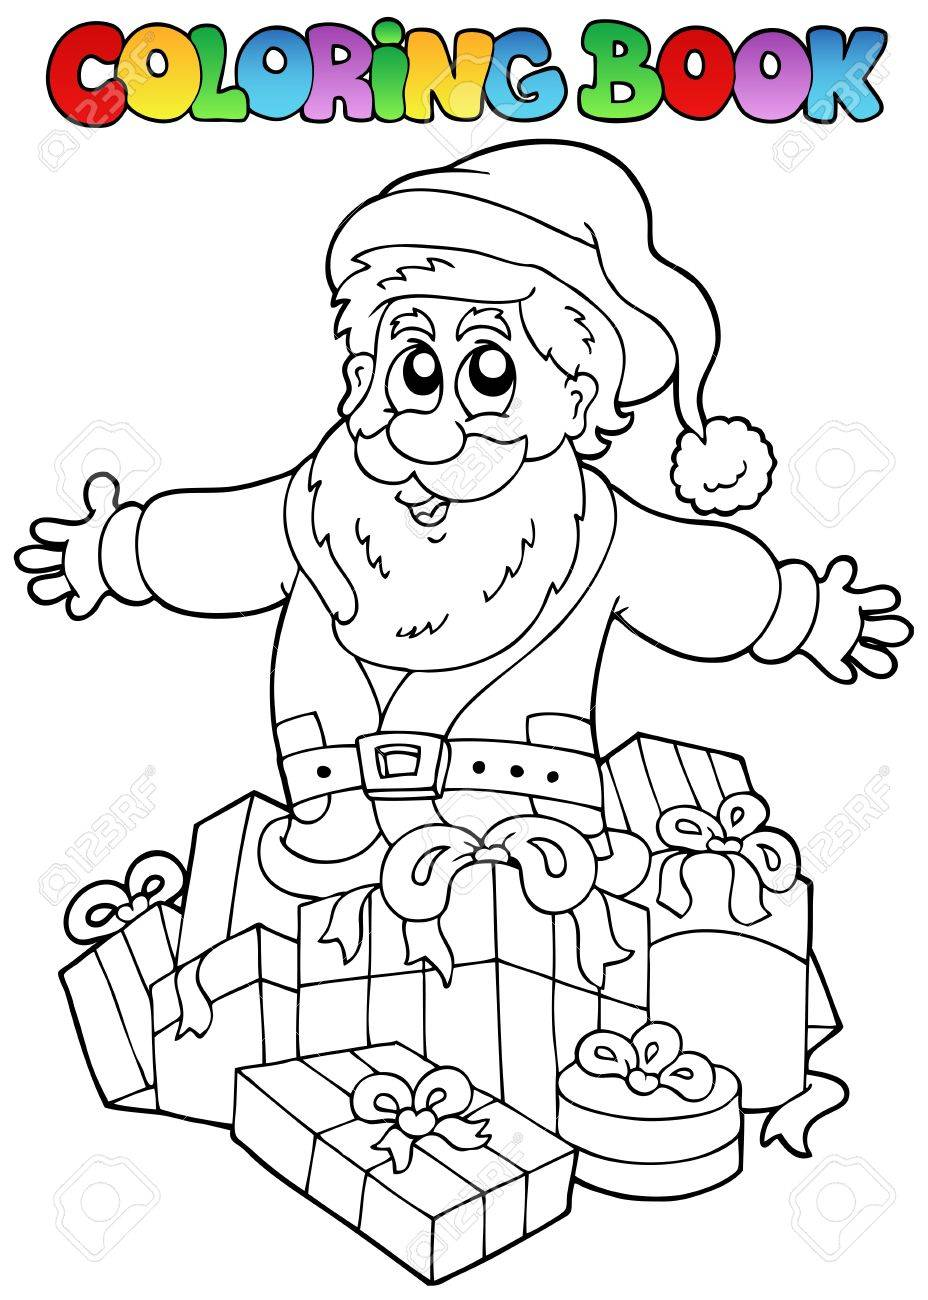 Coloring book Christmas topic illustration. Stock Vector - 10780700